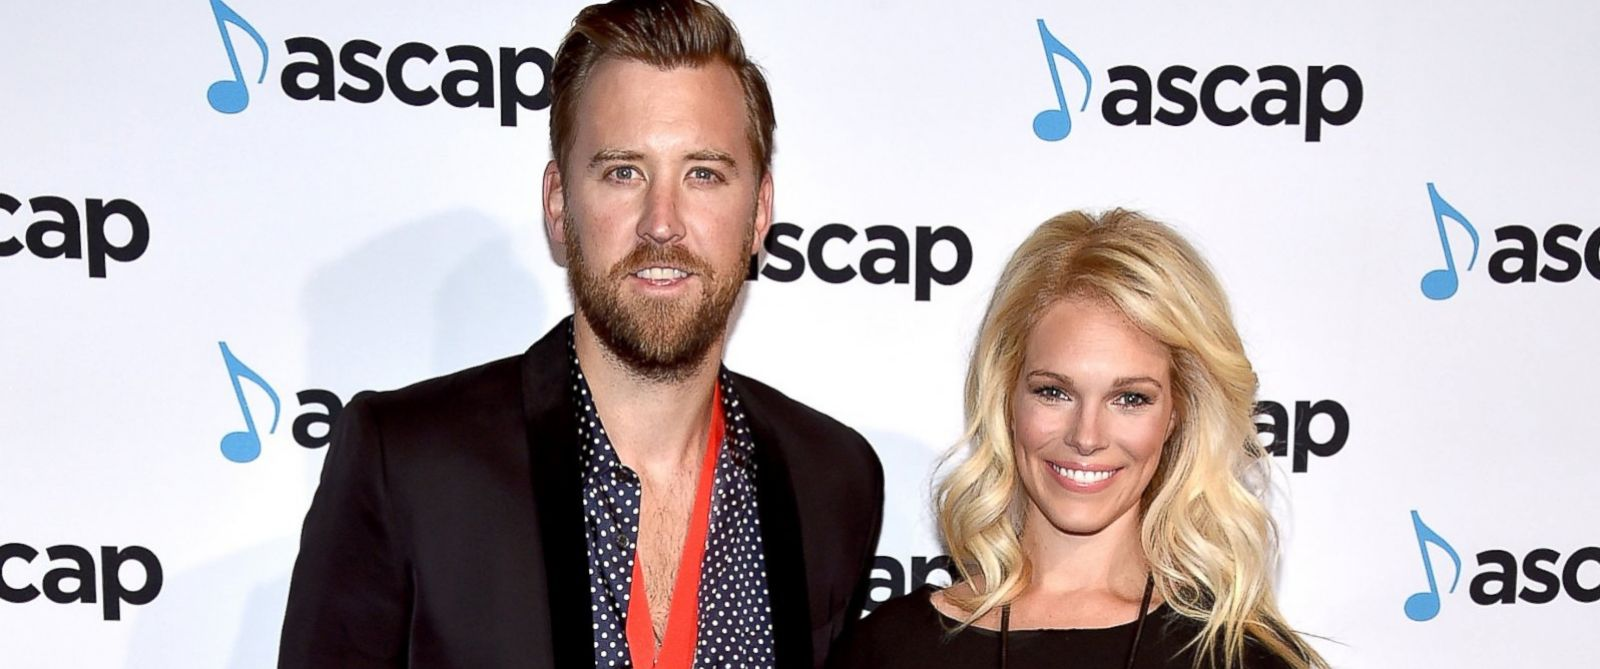 PHOTO: Charles Kelley of Lady Antebellum and Cassie McConnell attend the 53rd annual ASCAP Country Music awards at the Omni Hotel, Nov. 2, 2015, in Nashville.